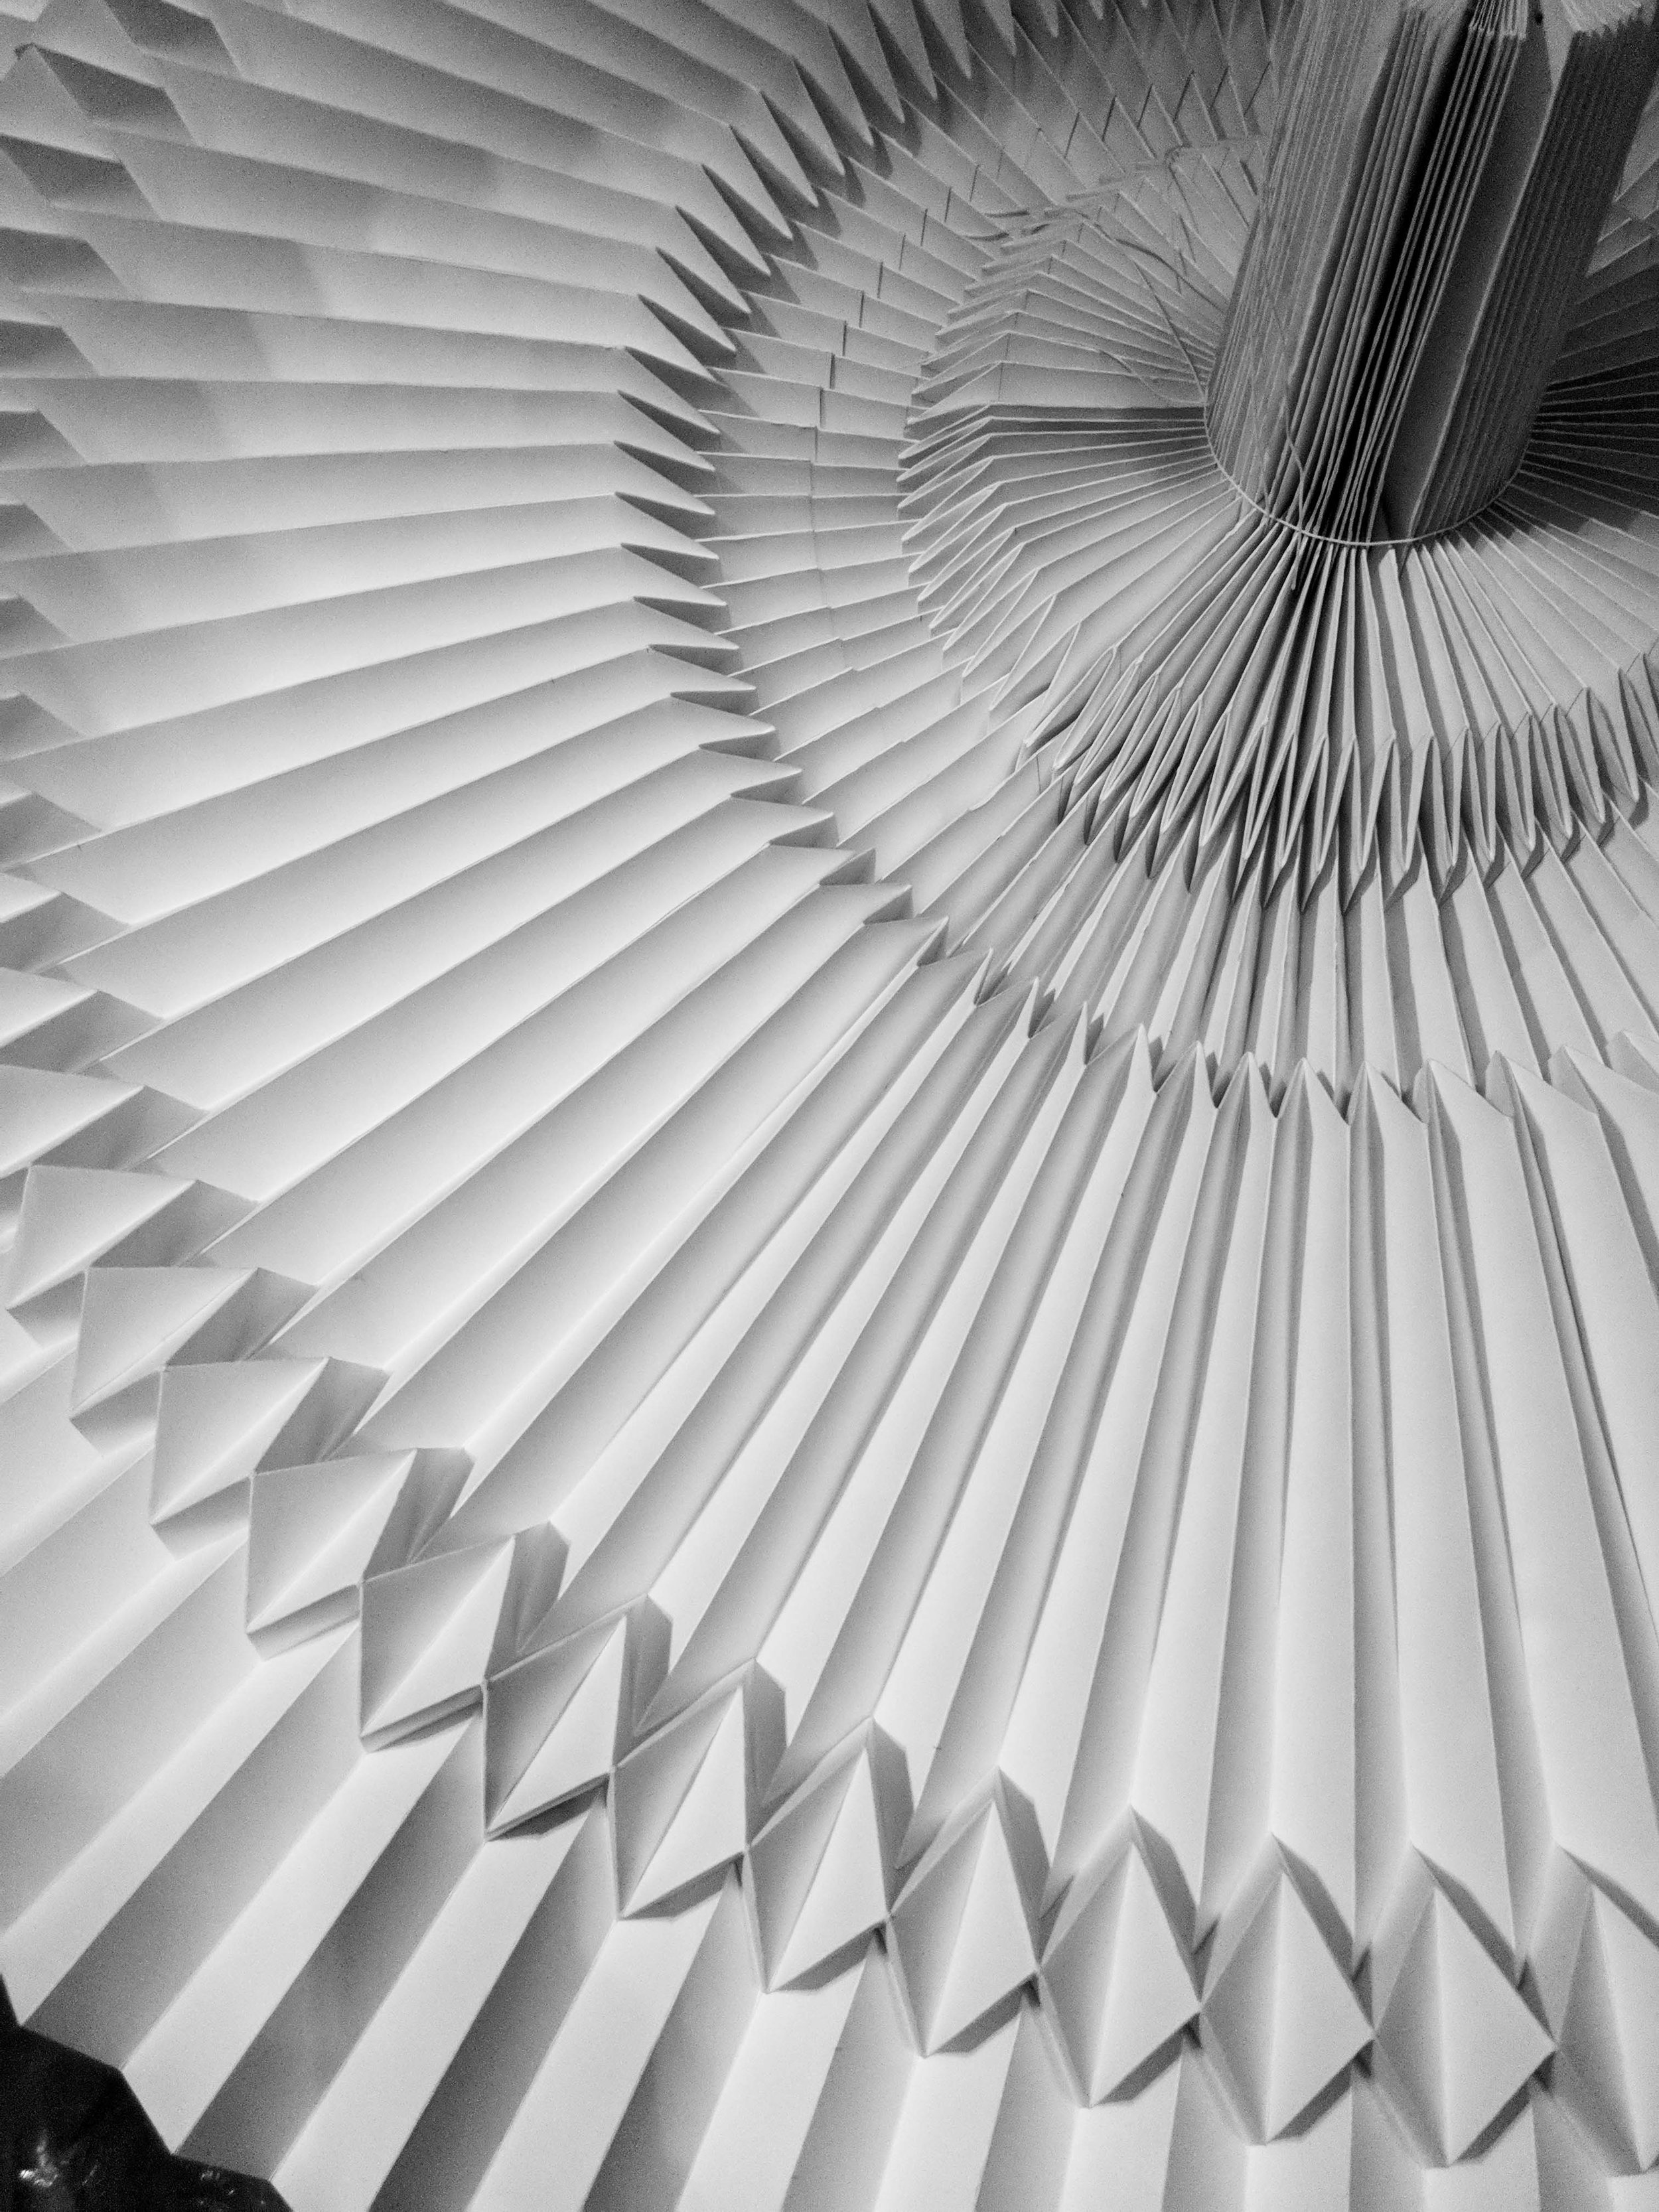 miss-cloudy-infinite-museum-fine-arts-pauline-loctin-paper-art-origami-folding-thierry-mugler-couturrissime-exhibition-4.jpg